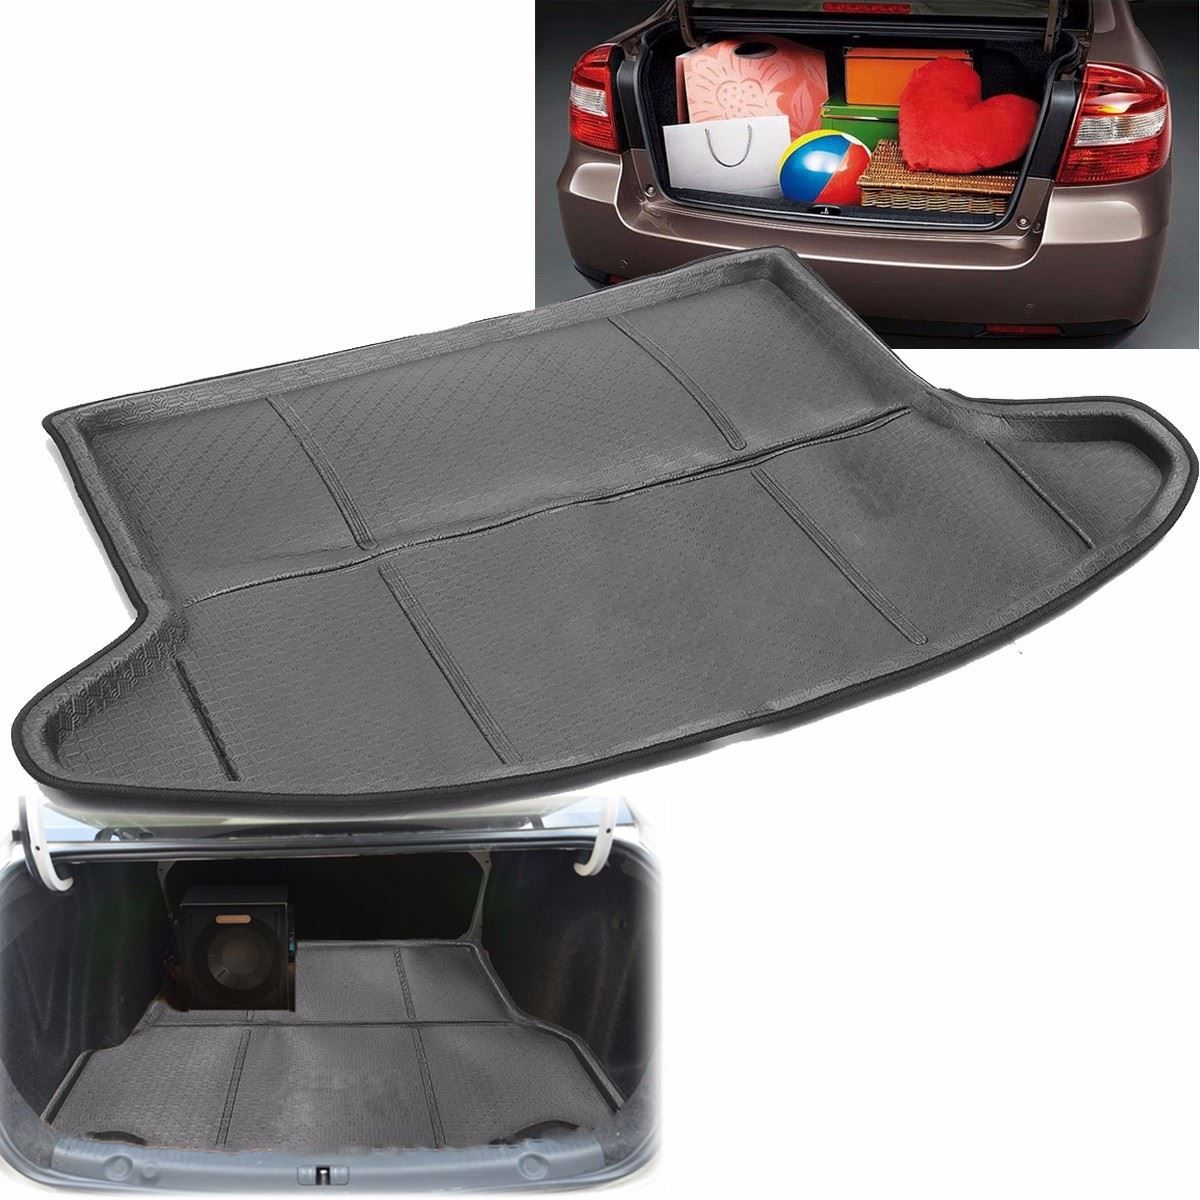 Auto Tailcase Mat Mantle Rear Car Trunk Cargo Mat Floor for Mazda /CX-5 2013 2014 2015 2017 Black